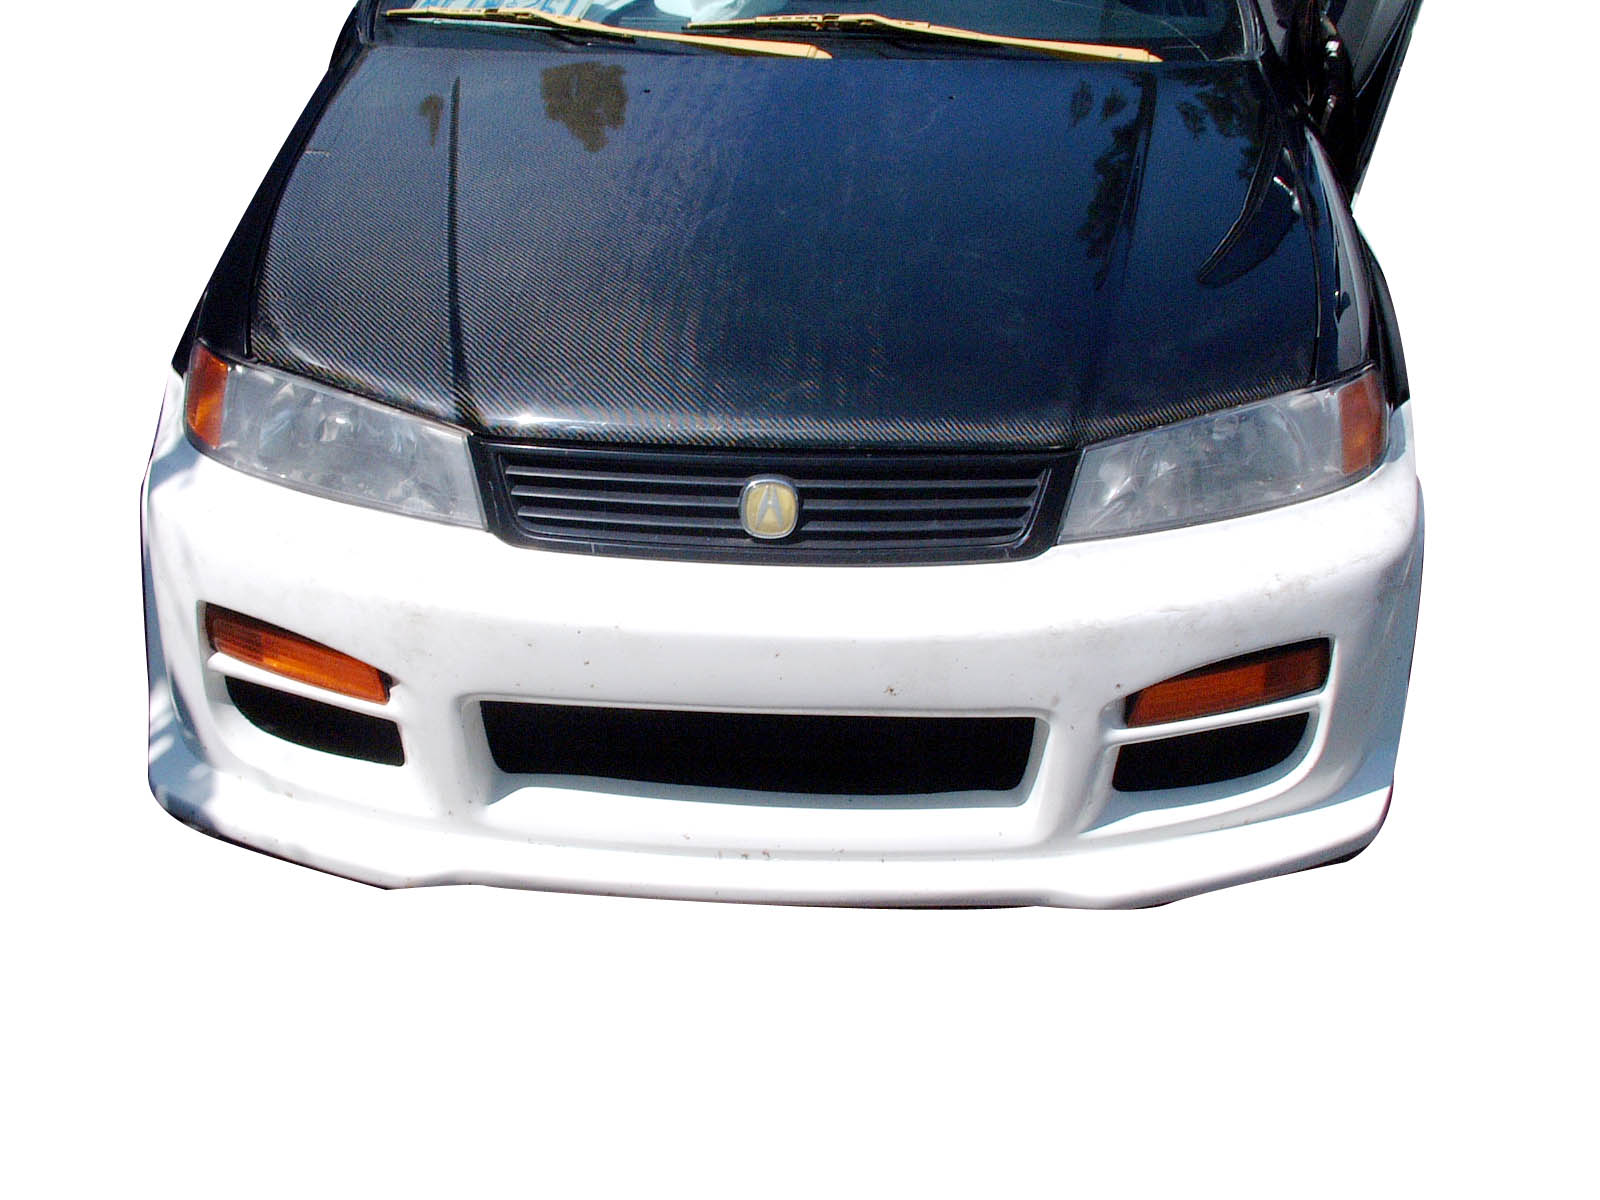 hight resolution of  1348 00 1996 2000 acura el domani 2dr 4dr oem style carbon fiber hood